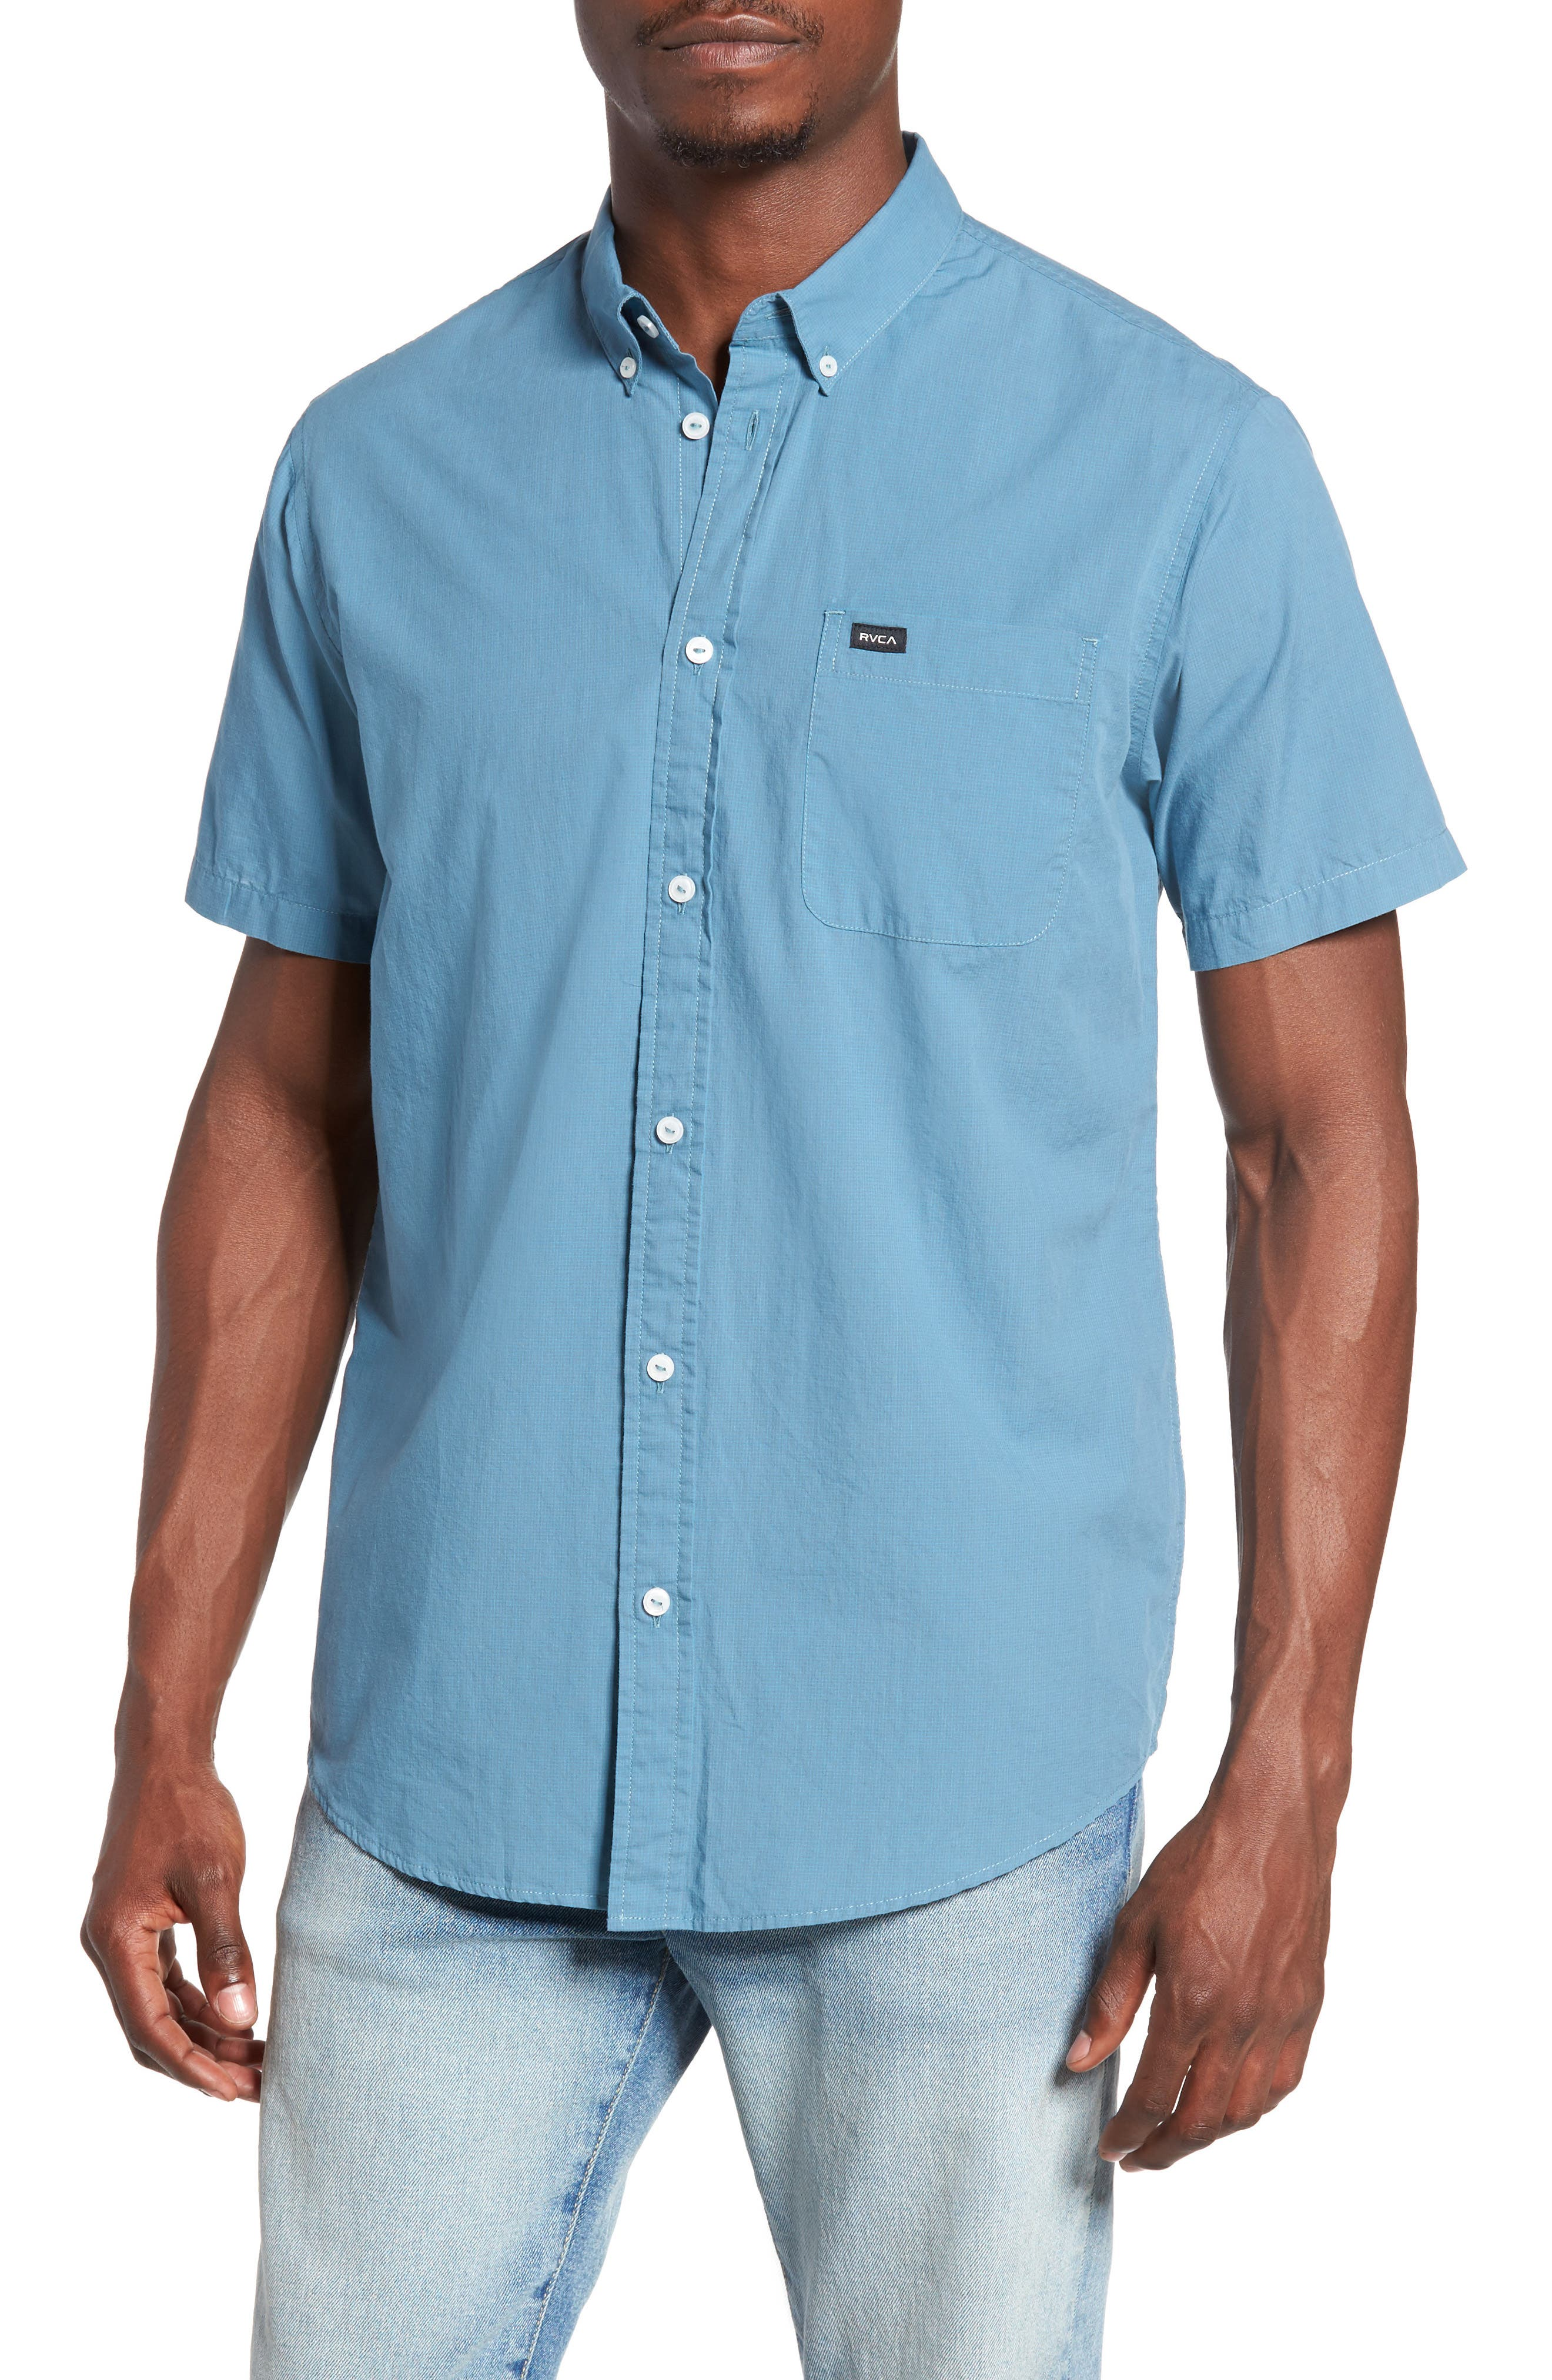 RVCA 'That'll Do' Slim Fit Microdot Woven Shirt